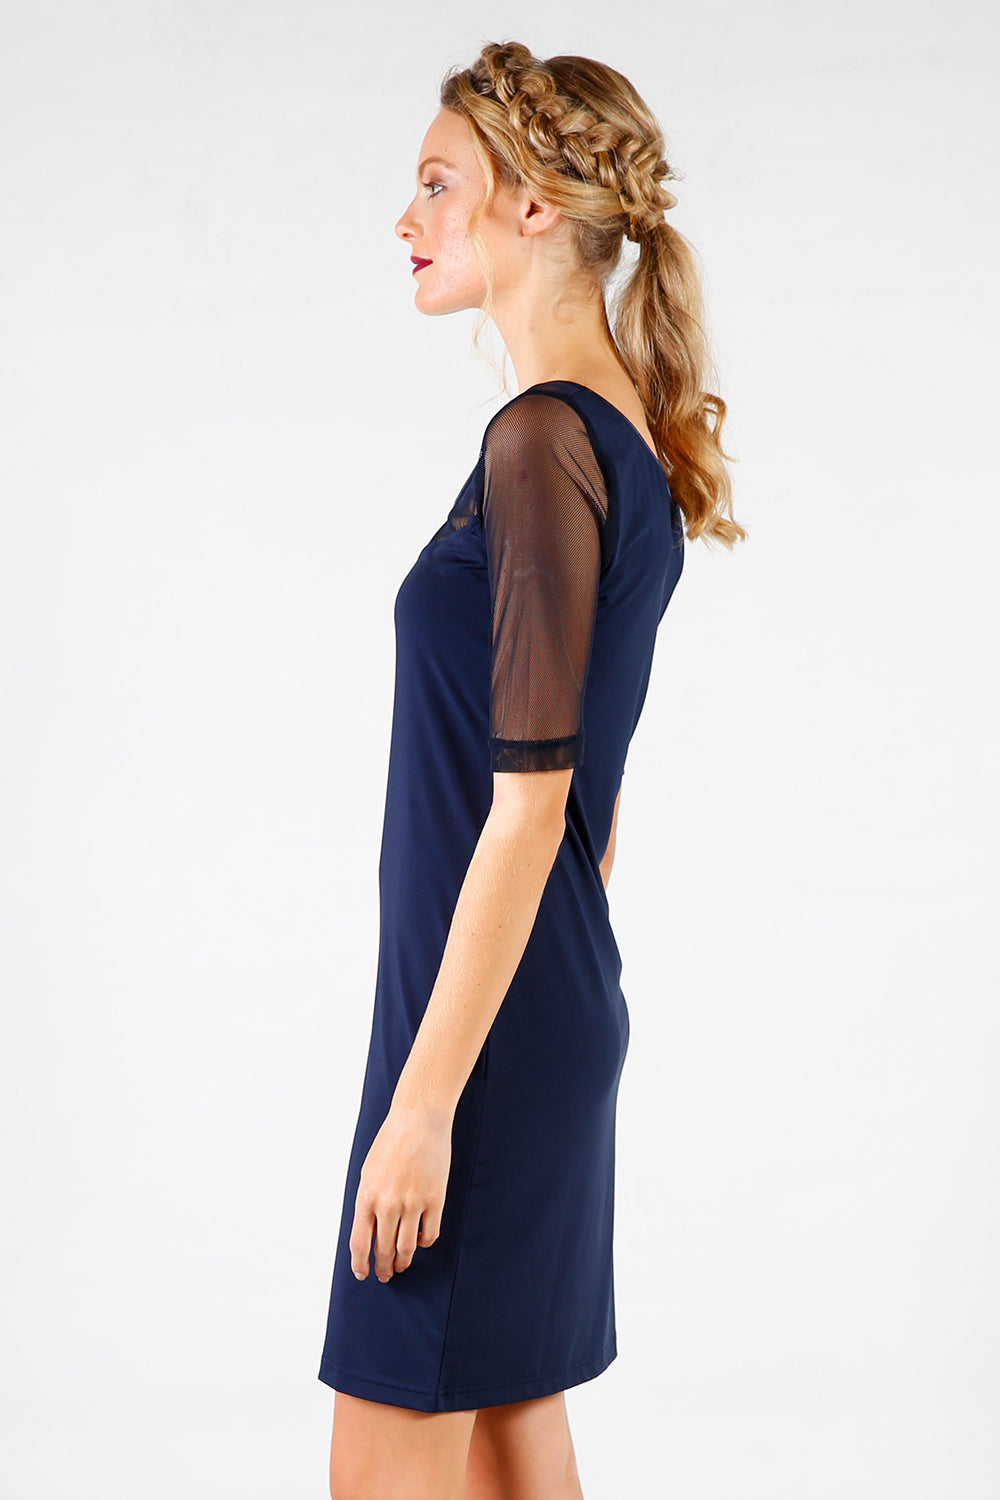 Fix Bit Slip | Undergarments | 3/4 sleeve | Navy Slip | New Zealand Fashion | Annah Stretton